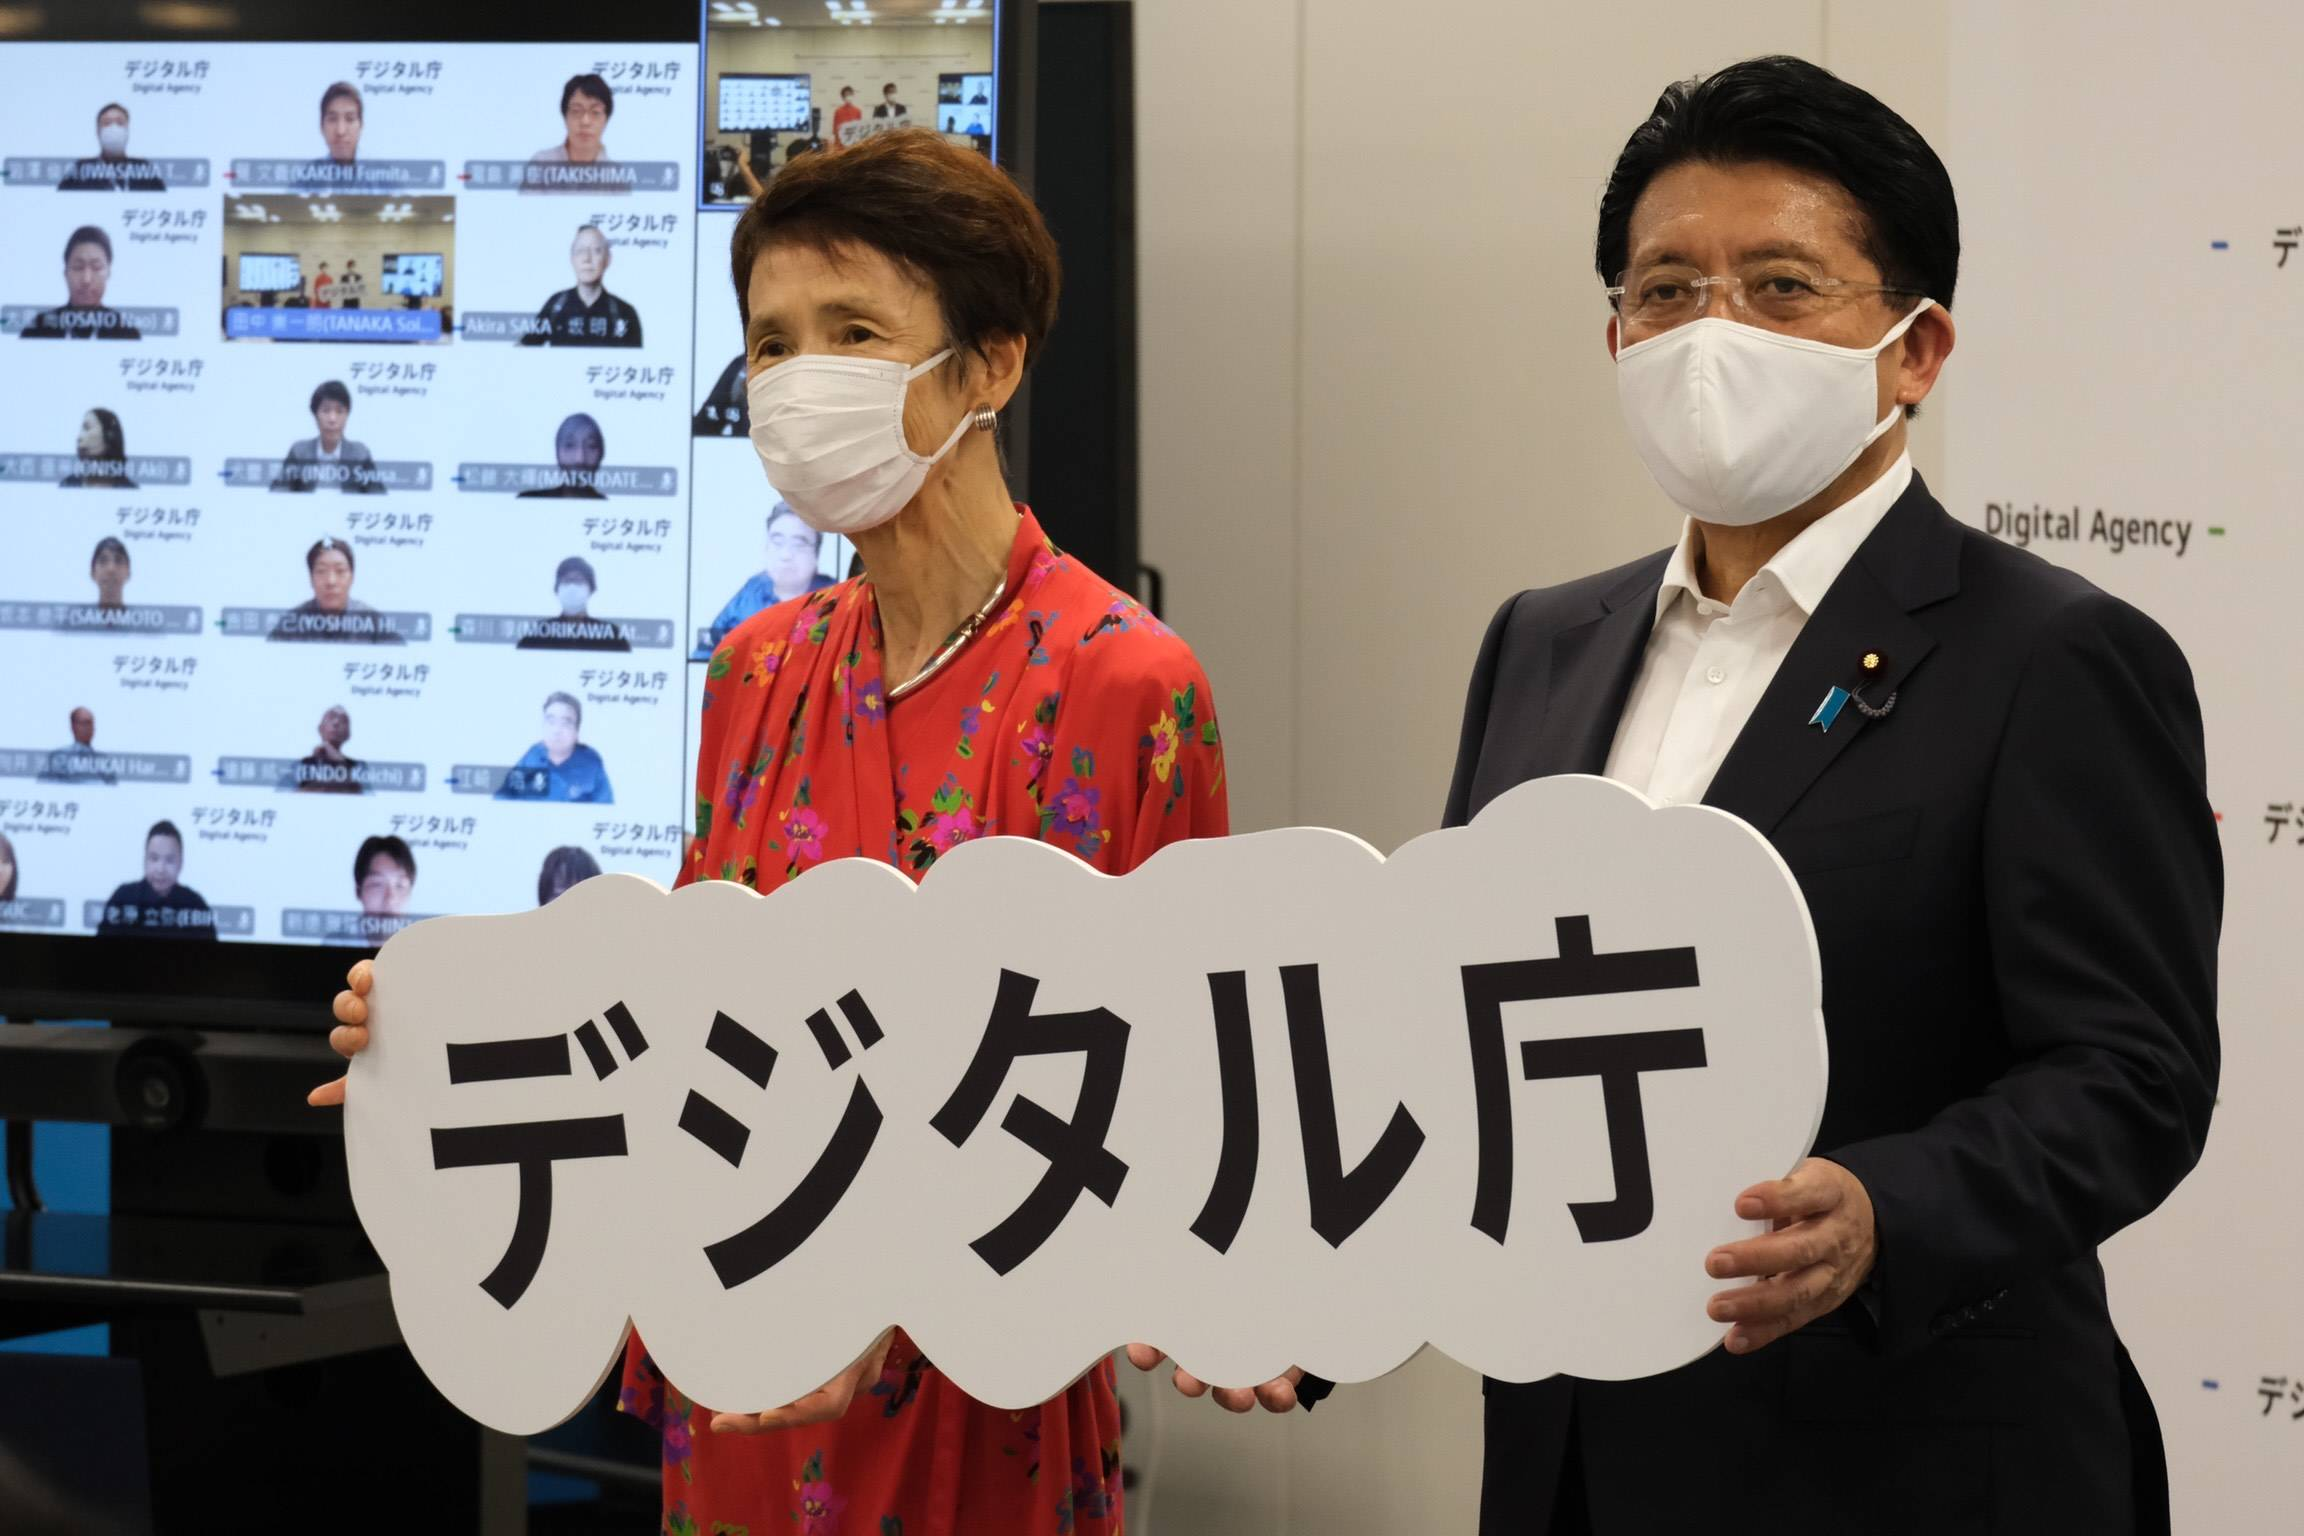 Digital minister Takuya Hirai (right) and Yoko Ishikura, who was appointed chief officer of the Digital Agency, during the organization's launch ceremony in Tokyo on Wednesday   KAZUAKI NAGATA